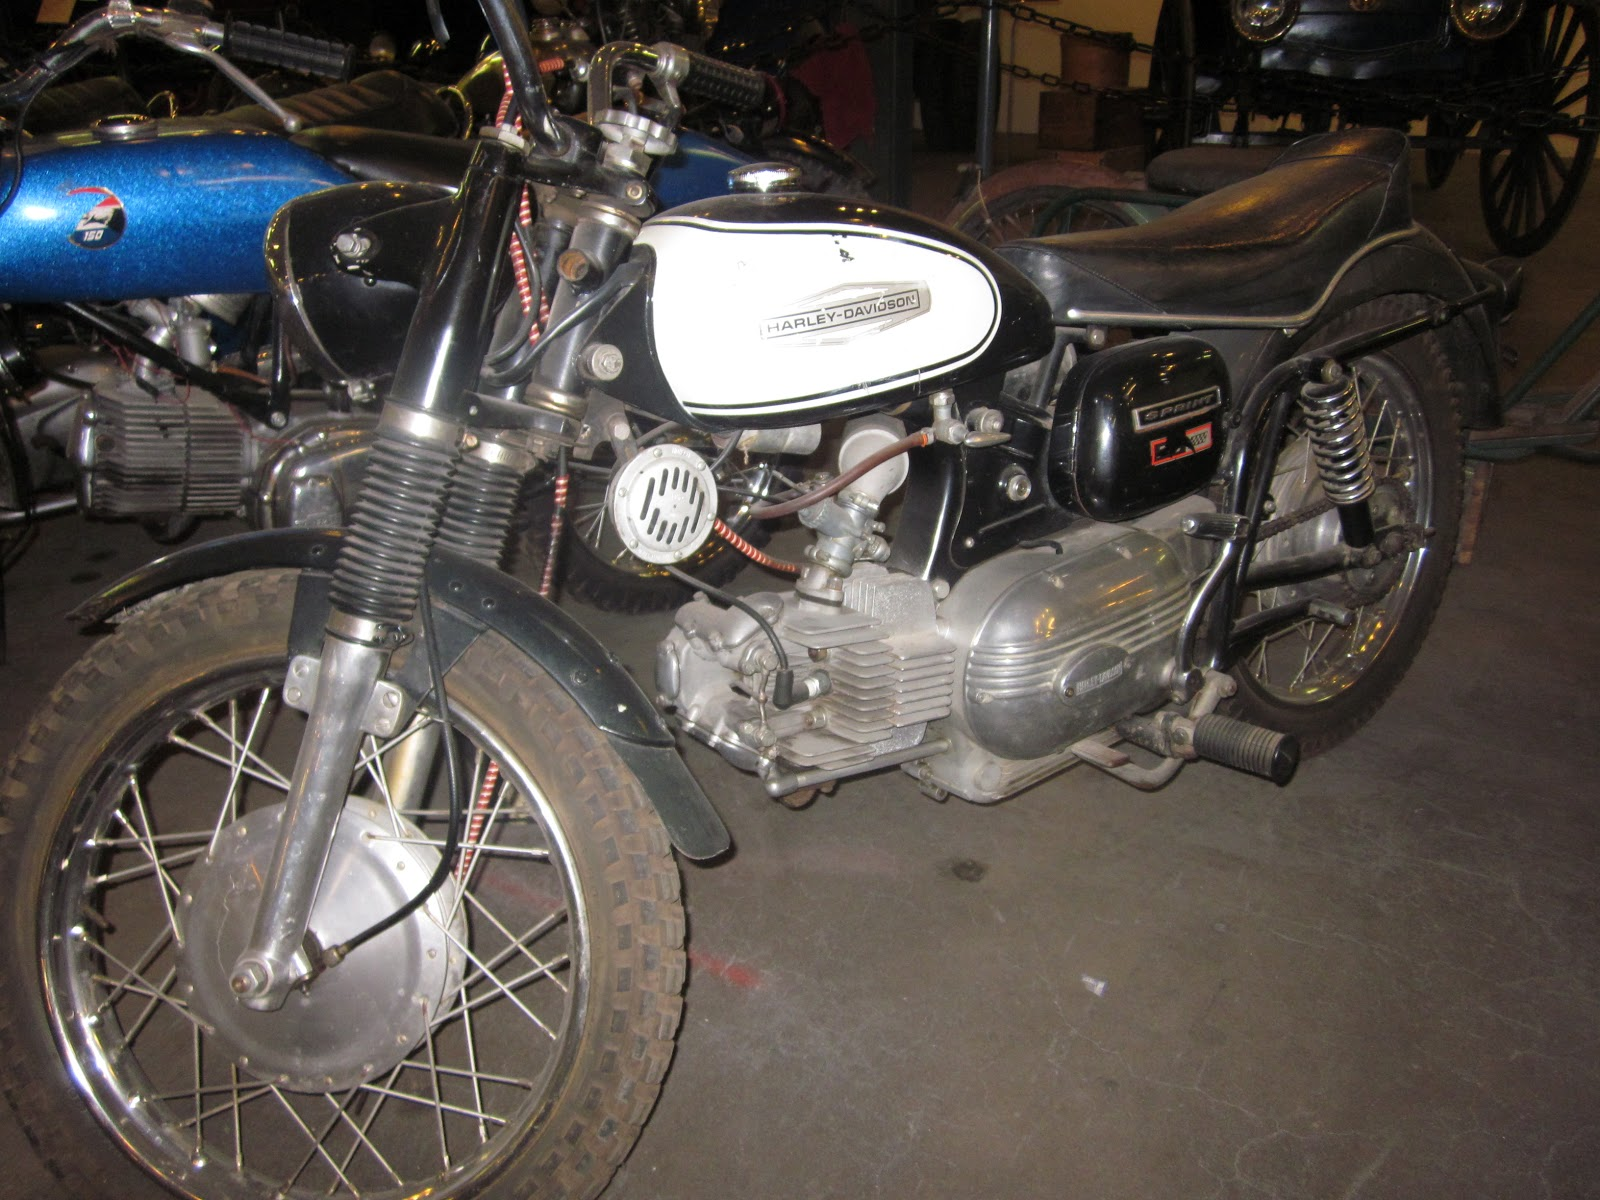 1966 Harley Davidson Sprint 250 for Sale